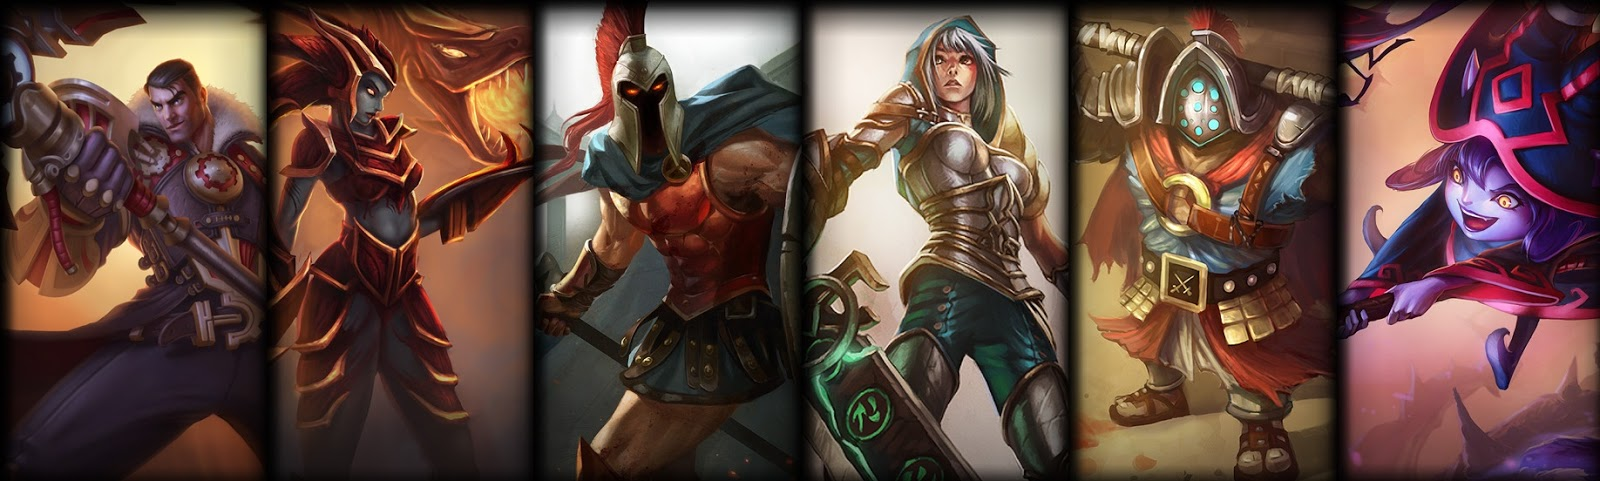 Surrender at 20: New Champion and Skin Sale 11/2 - 11/5